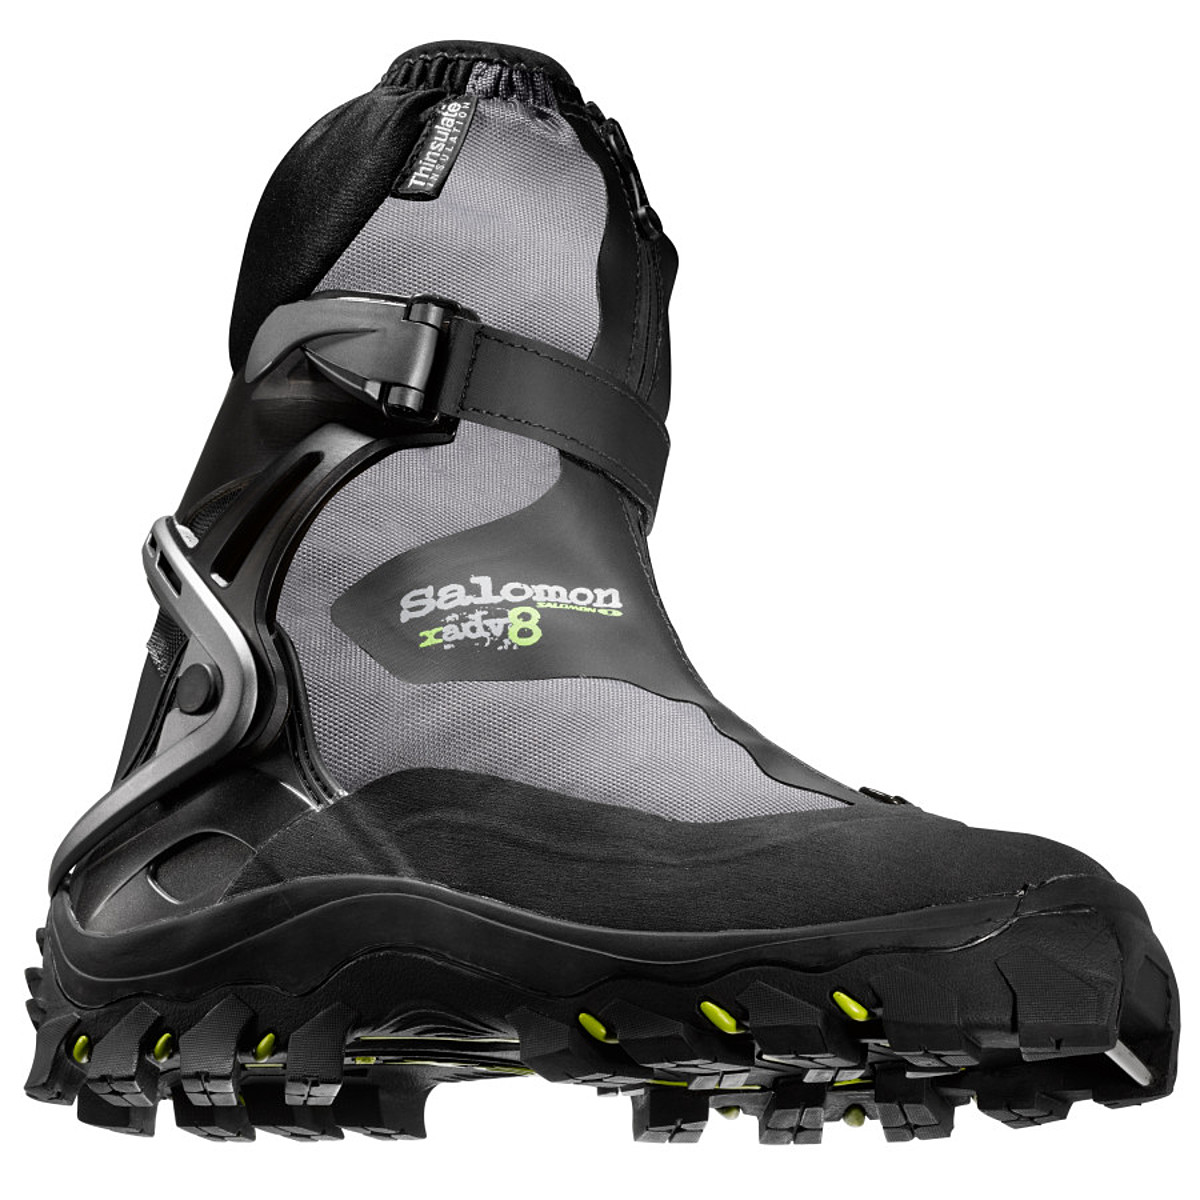 photo: Salomon X-ADV 8 nordic touring boot